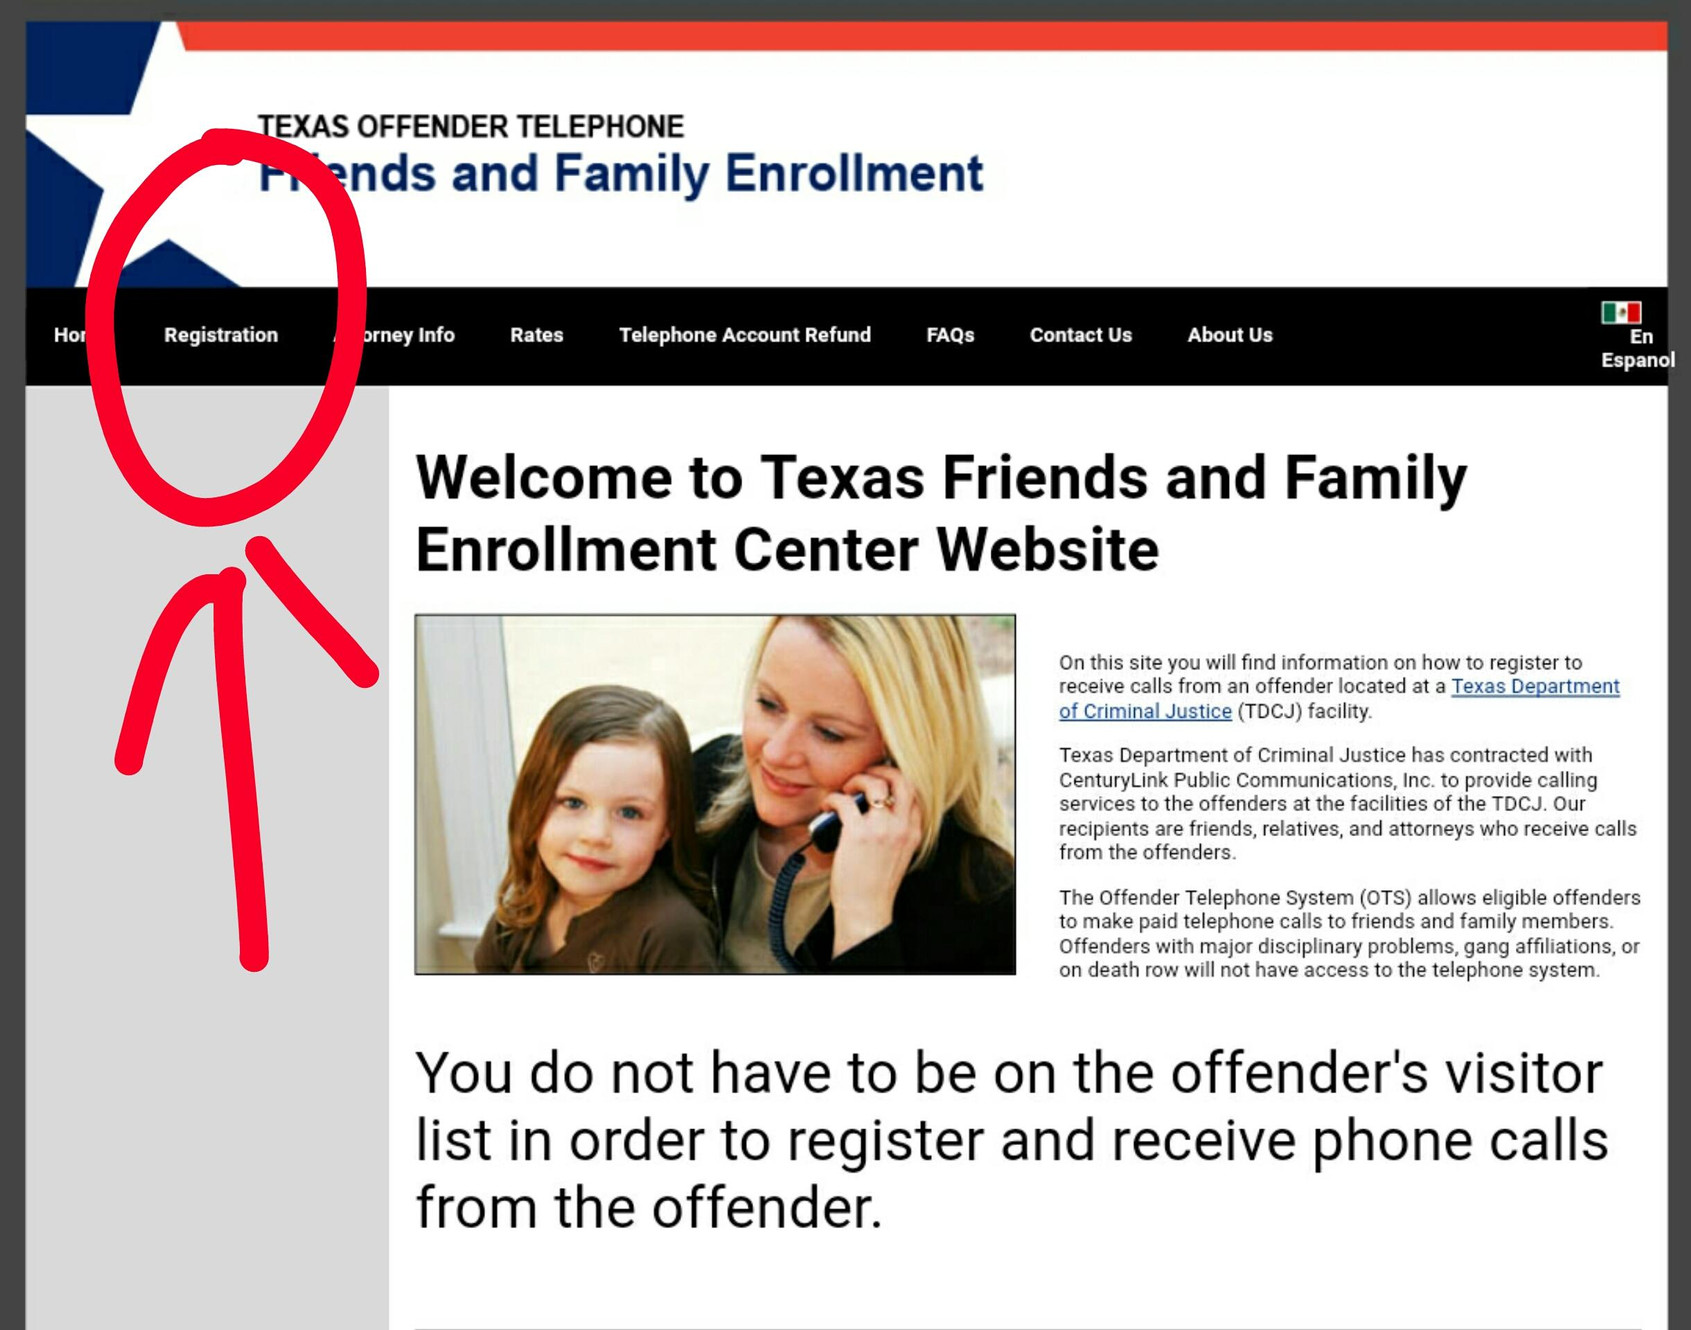 TDCJ Resources (Where to find your questions)